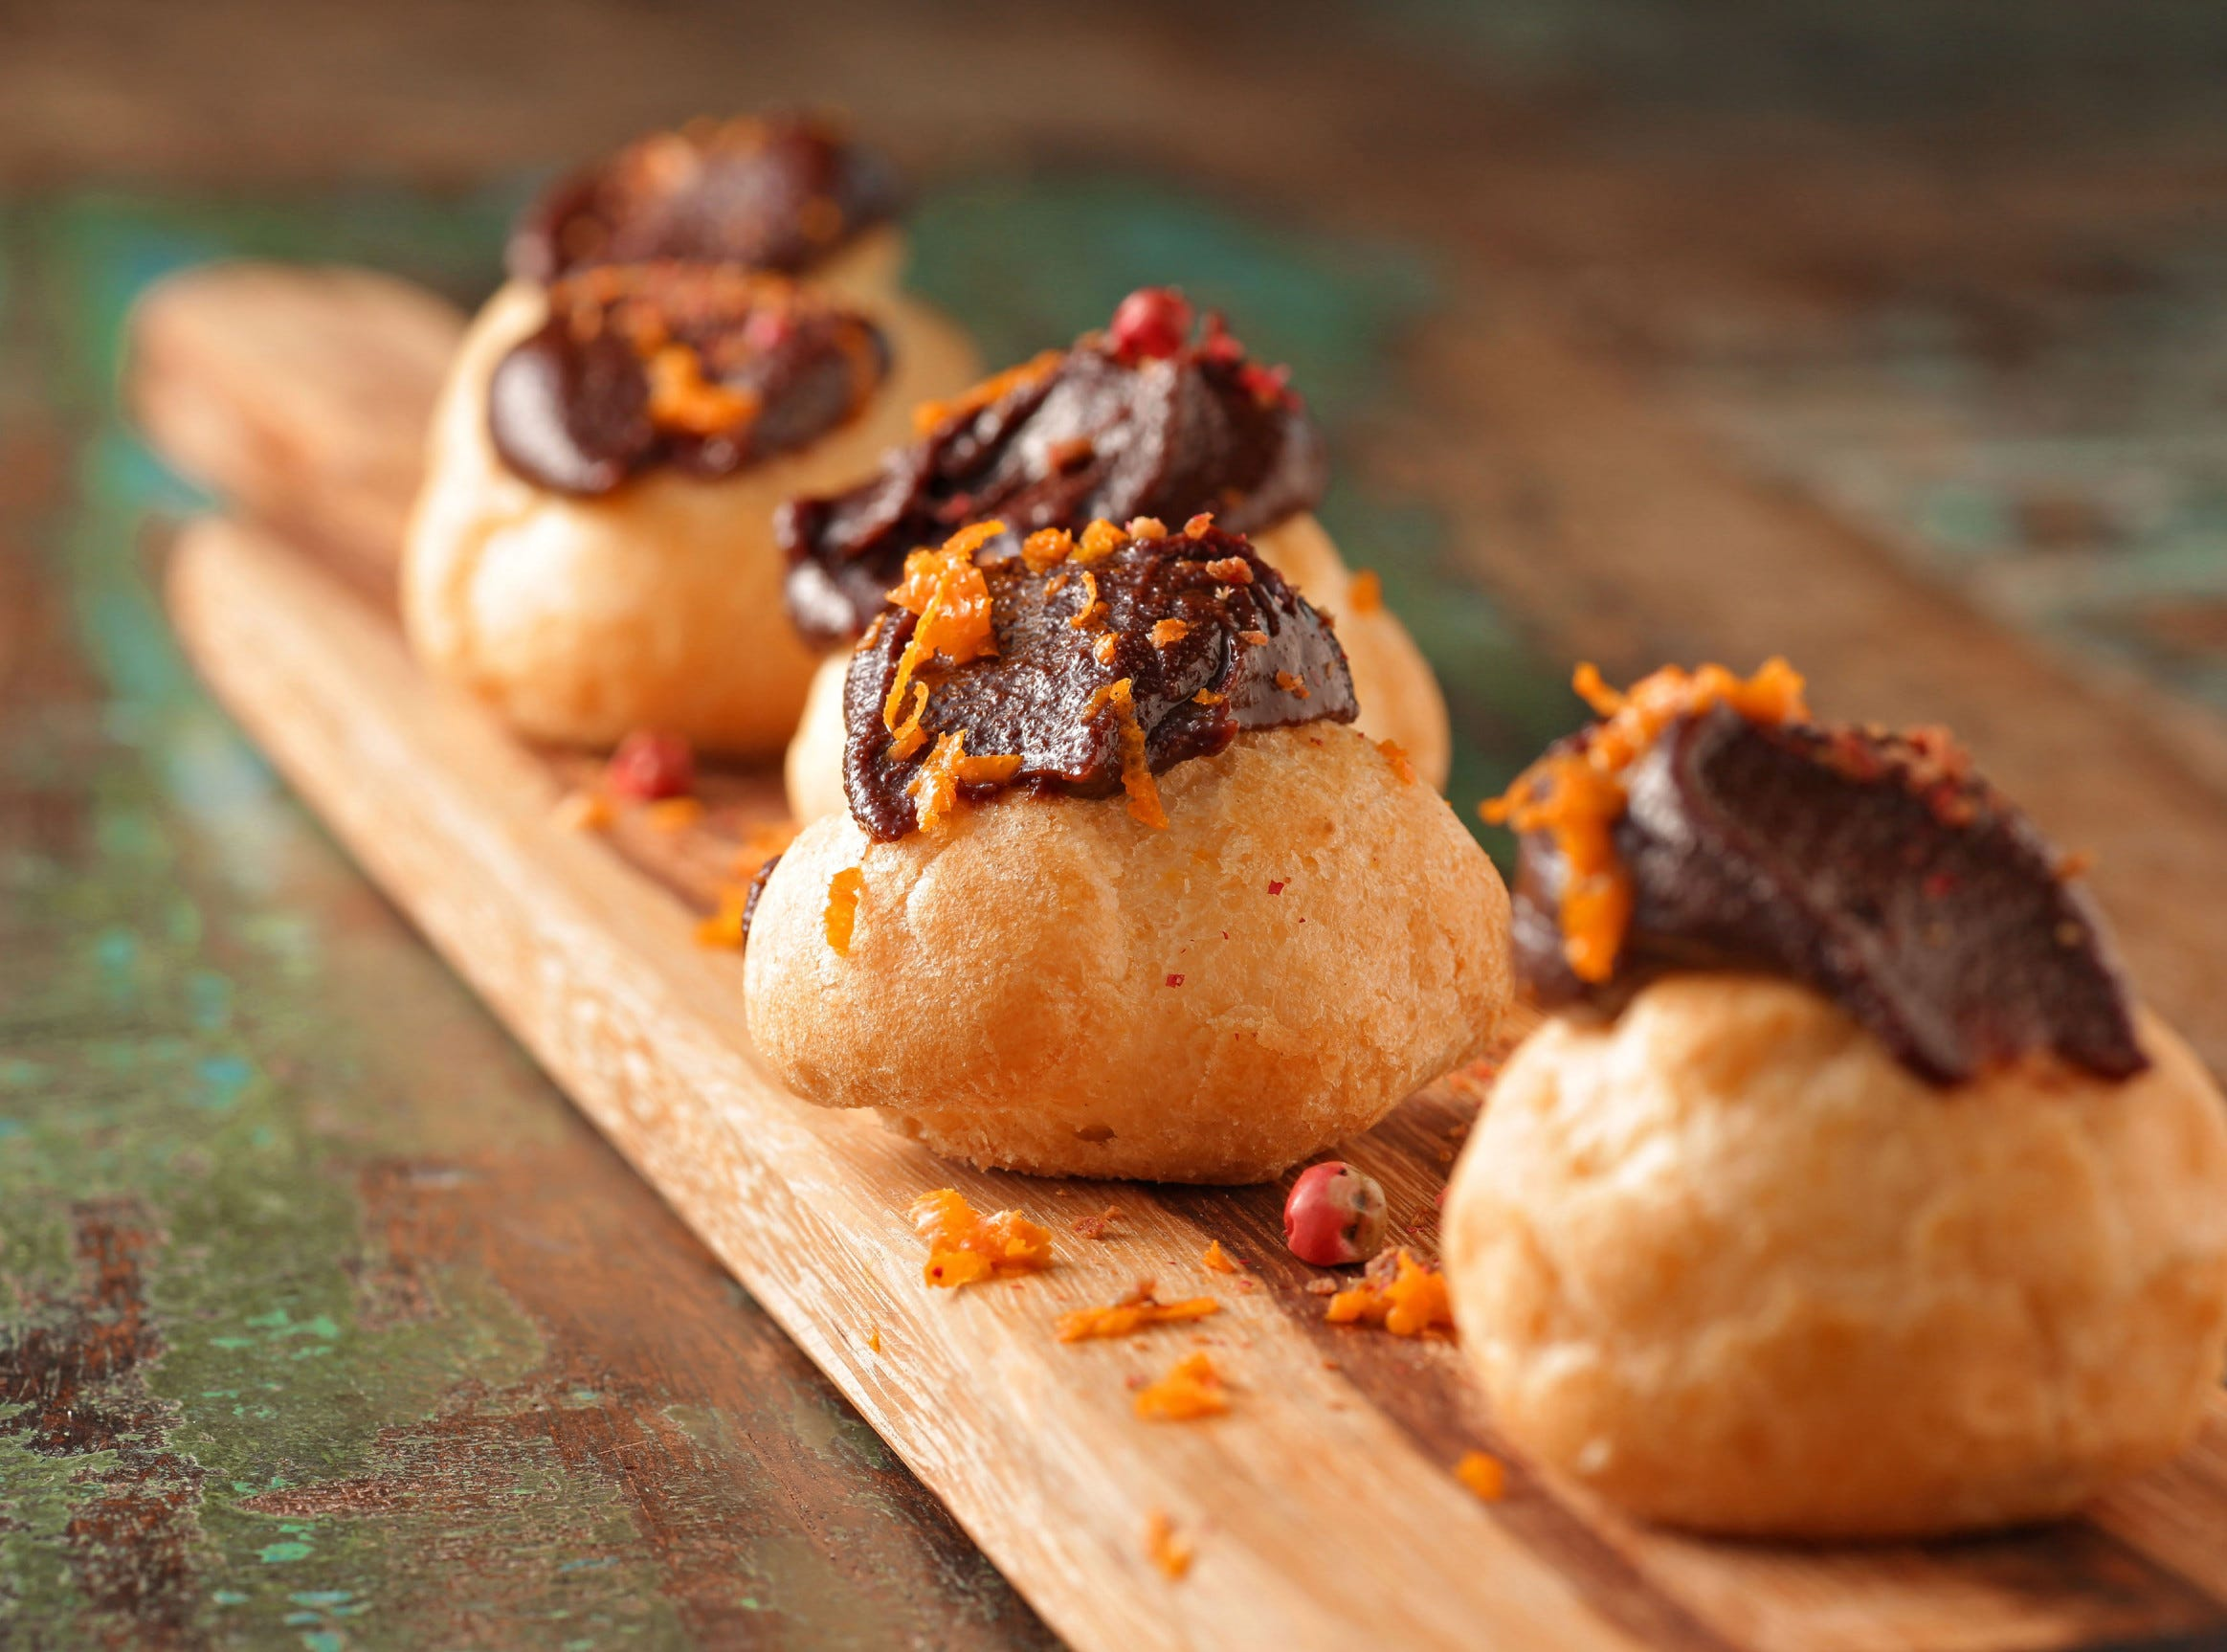 These profiteroles with their spicy, chocolaty cannoli filling make for a sensational autumn or winter dessert, and can be offered alongside — or instead of — traditional holiday desserts.